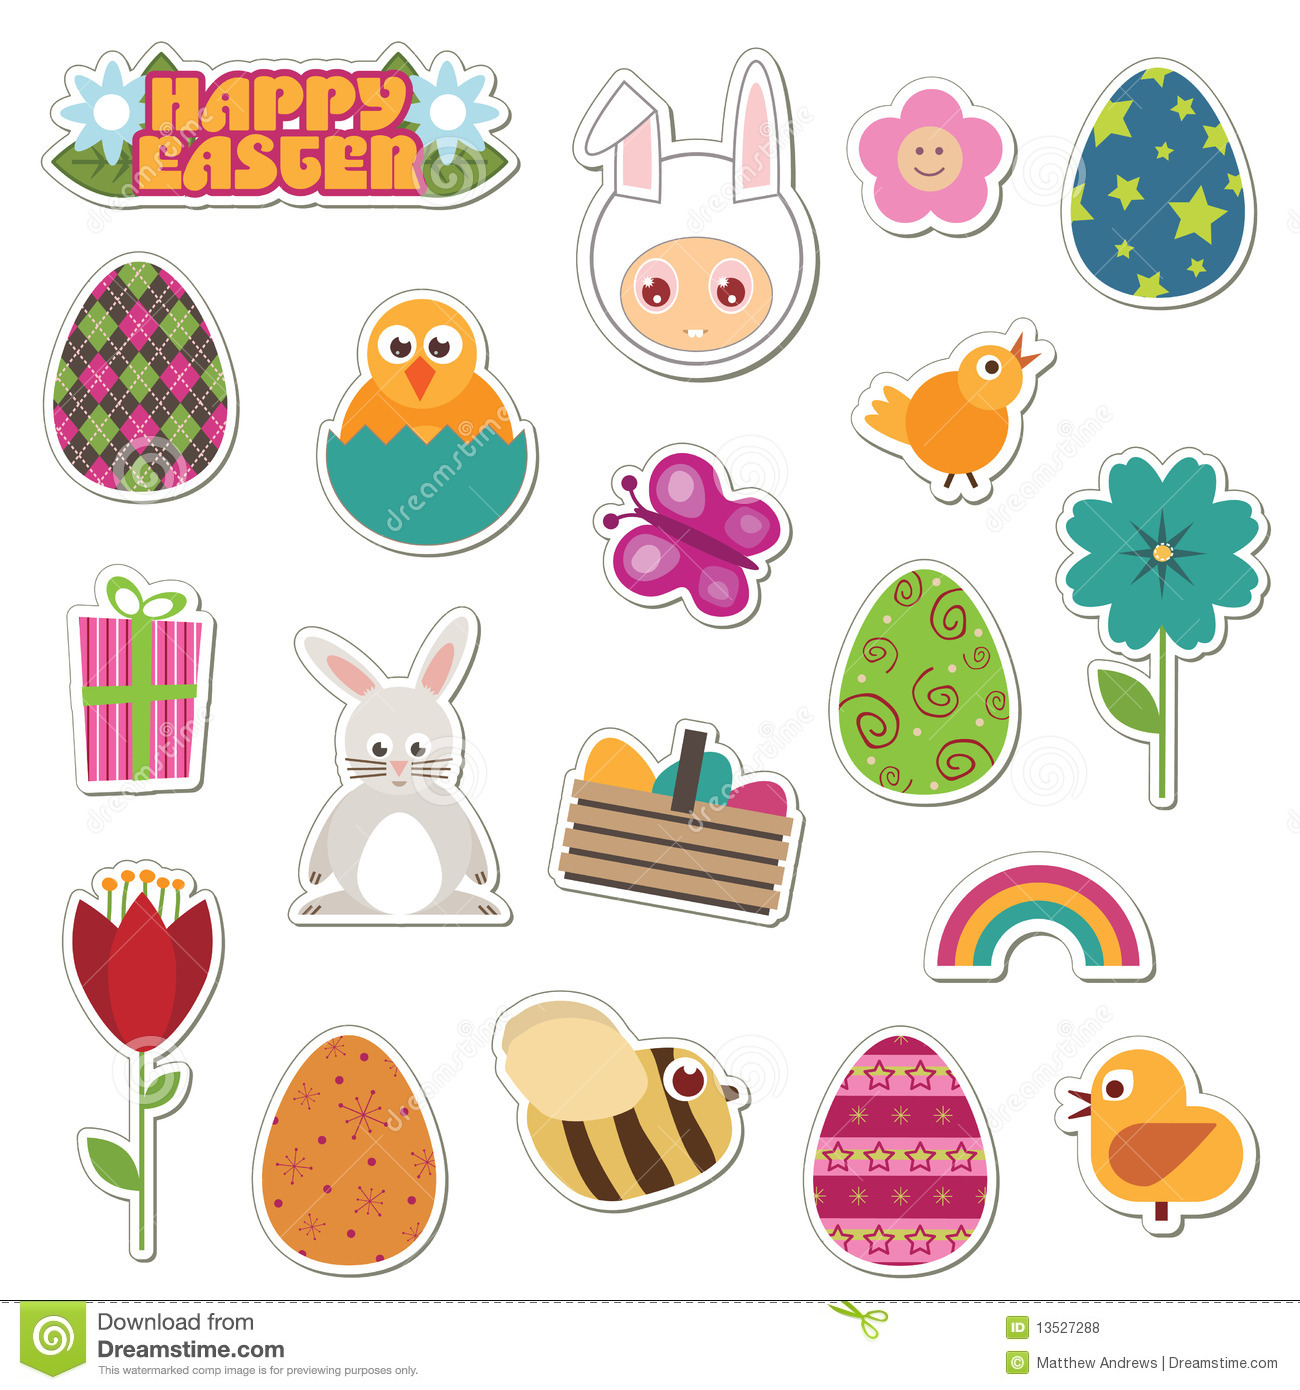 Easter Stickers Royalty Free Stock Photos - Image: 13527288